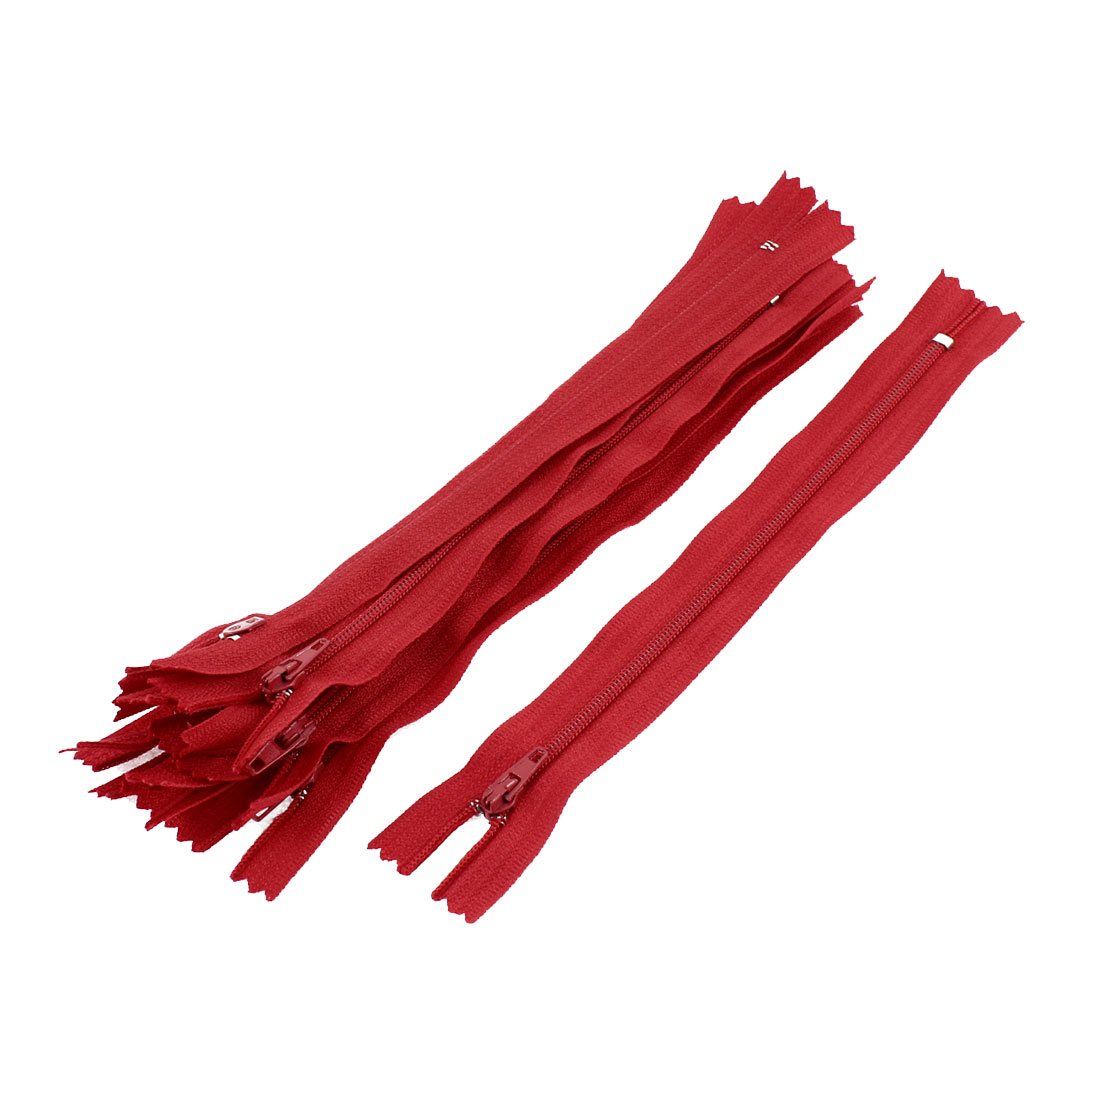 Dress Pants Closed End Nylon Zippers Tailor Sewing Craft Tool Red 18cm 10 Pcs